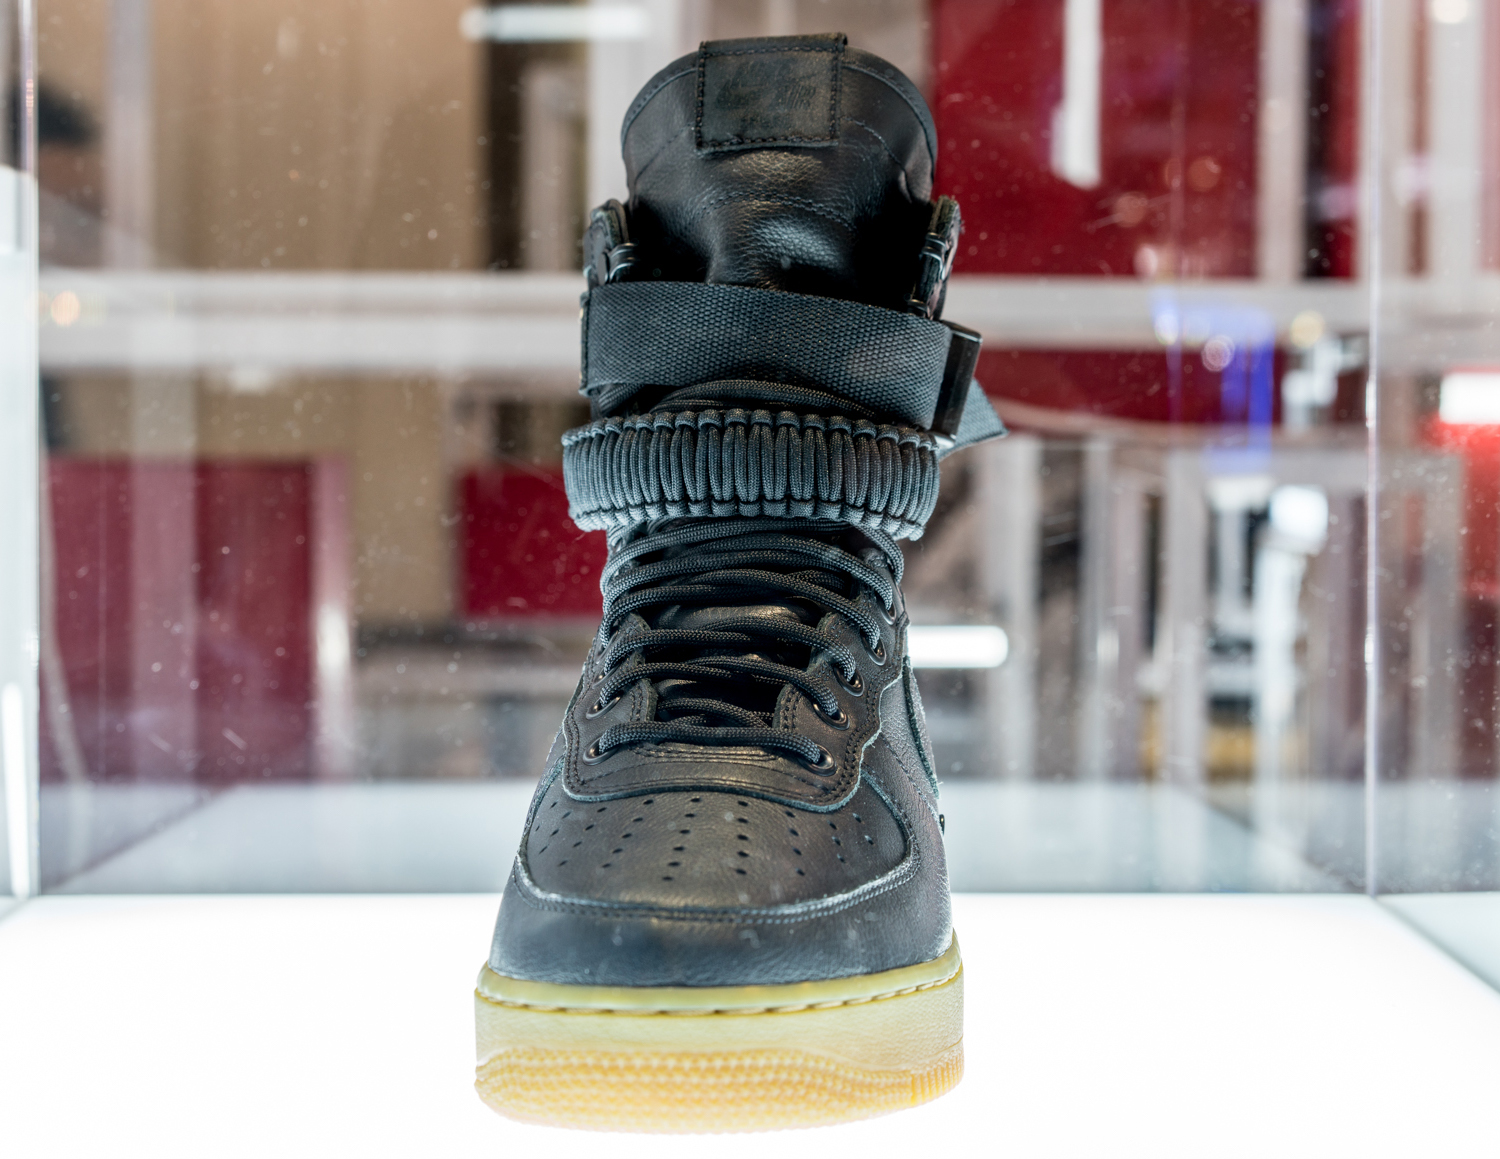 NIKE AIR FORCE 1 Mid WB Olive Green Light Gum Suede Toddler